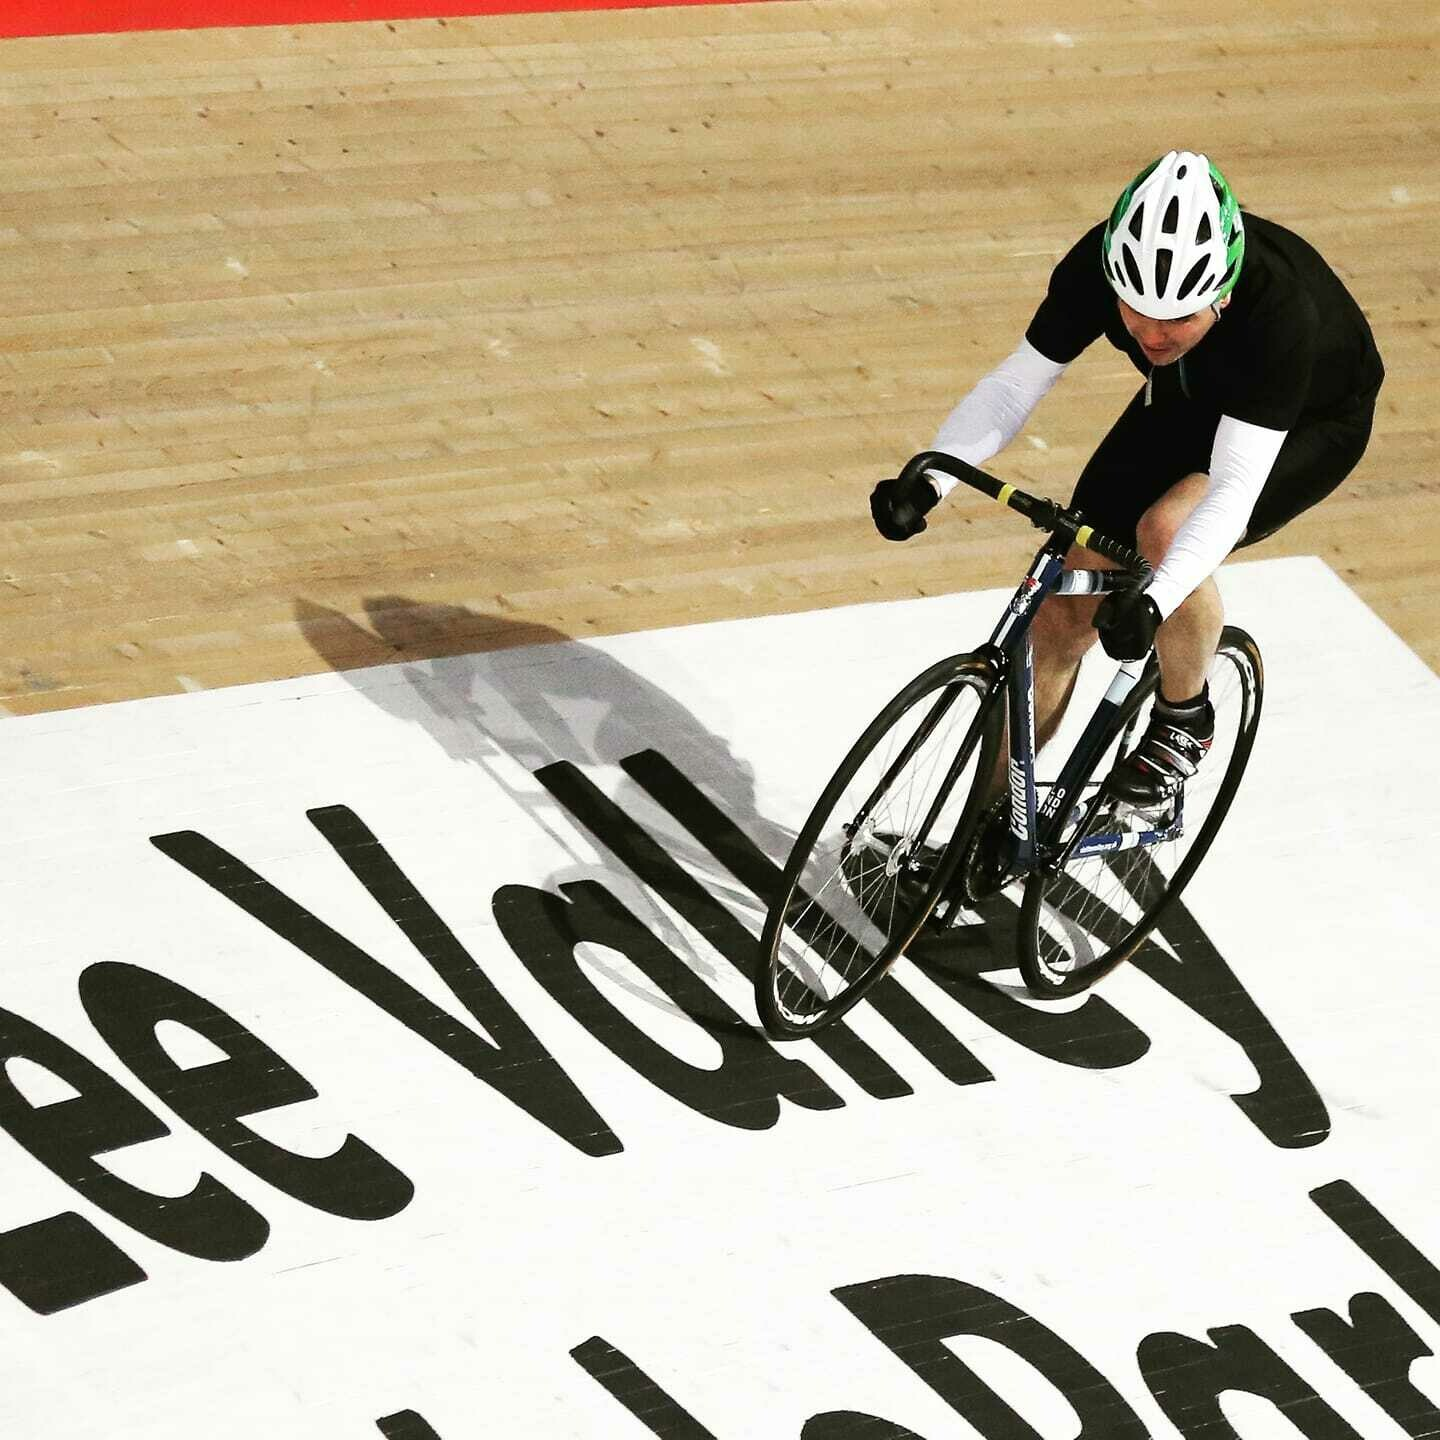 PURSUIT OF GLORY: TRACK CYCLING